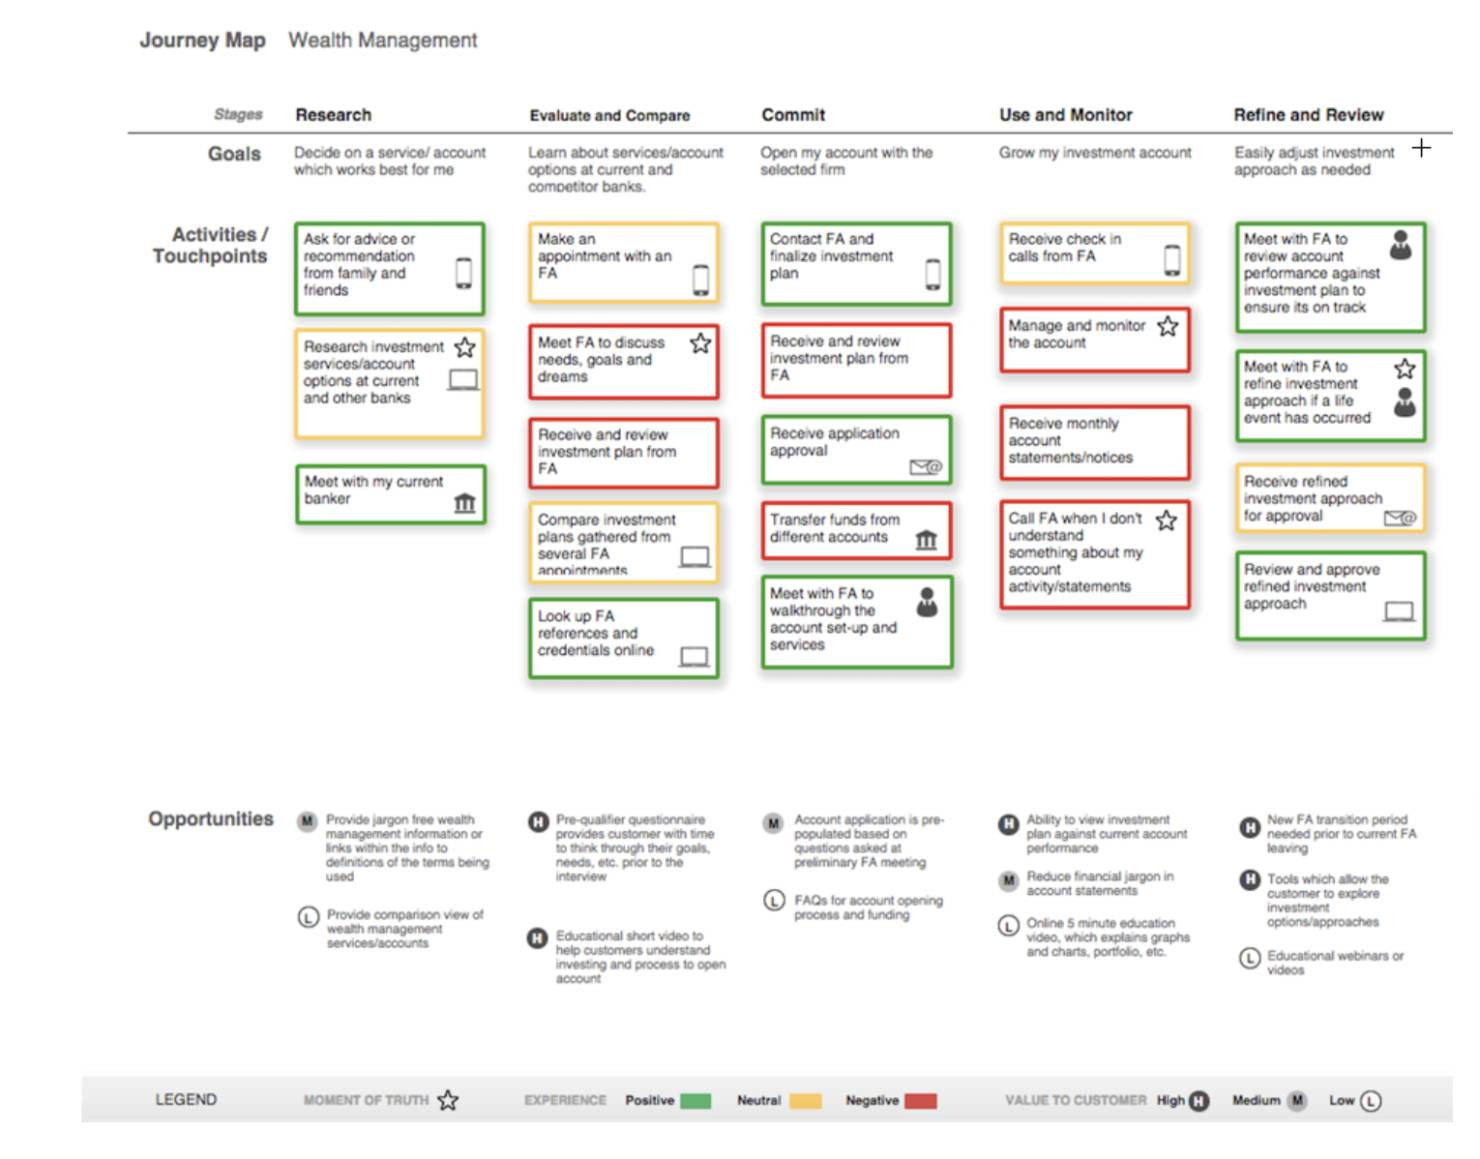 b2b customer journey map for wealth managenet